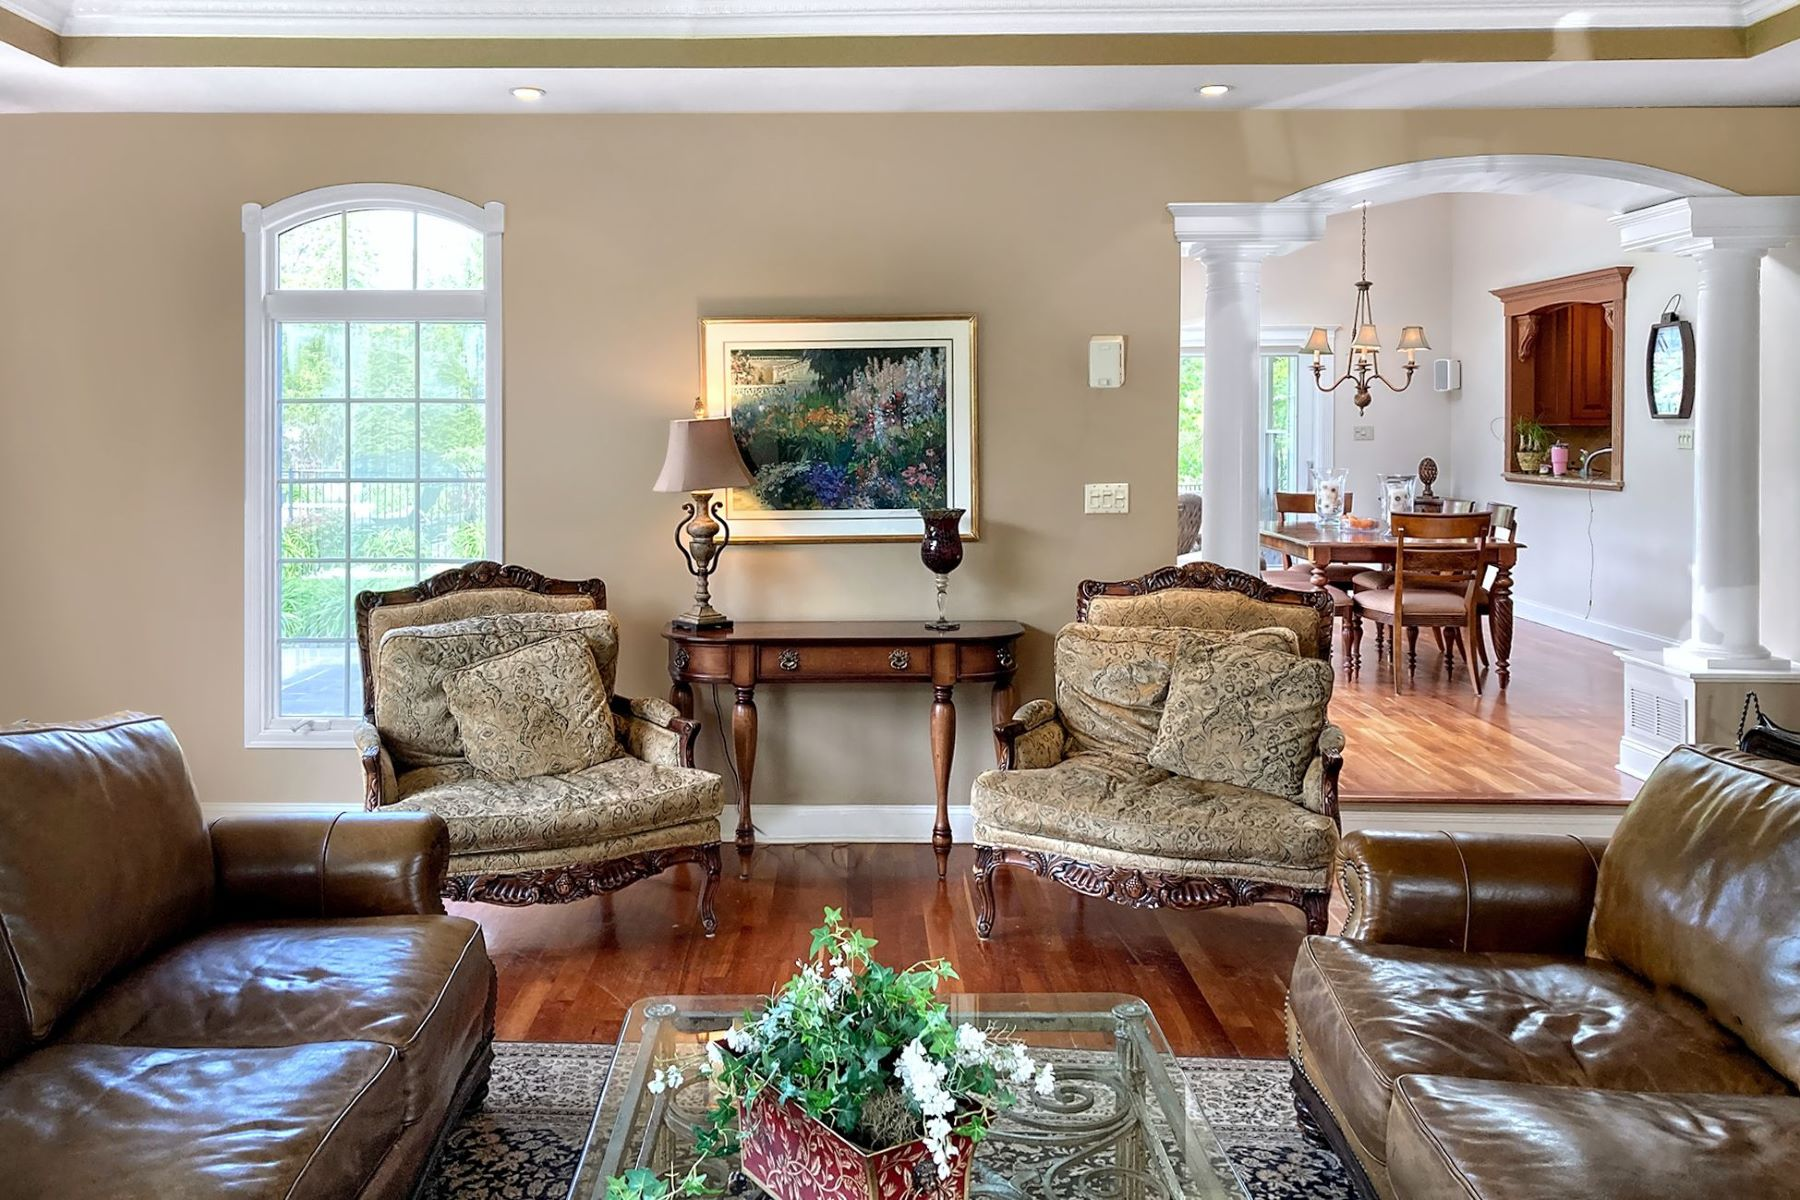 Additional photo for property listing at Luxury Colonial with Backyard Shangri-La 14 Penrose Lane, West Windsor, New Jersey 08550 United States